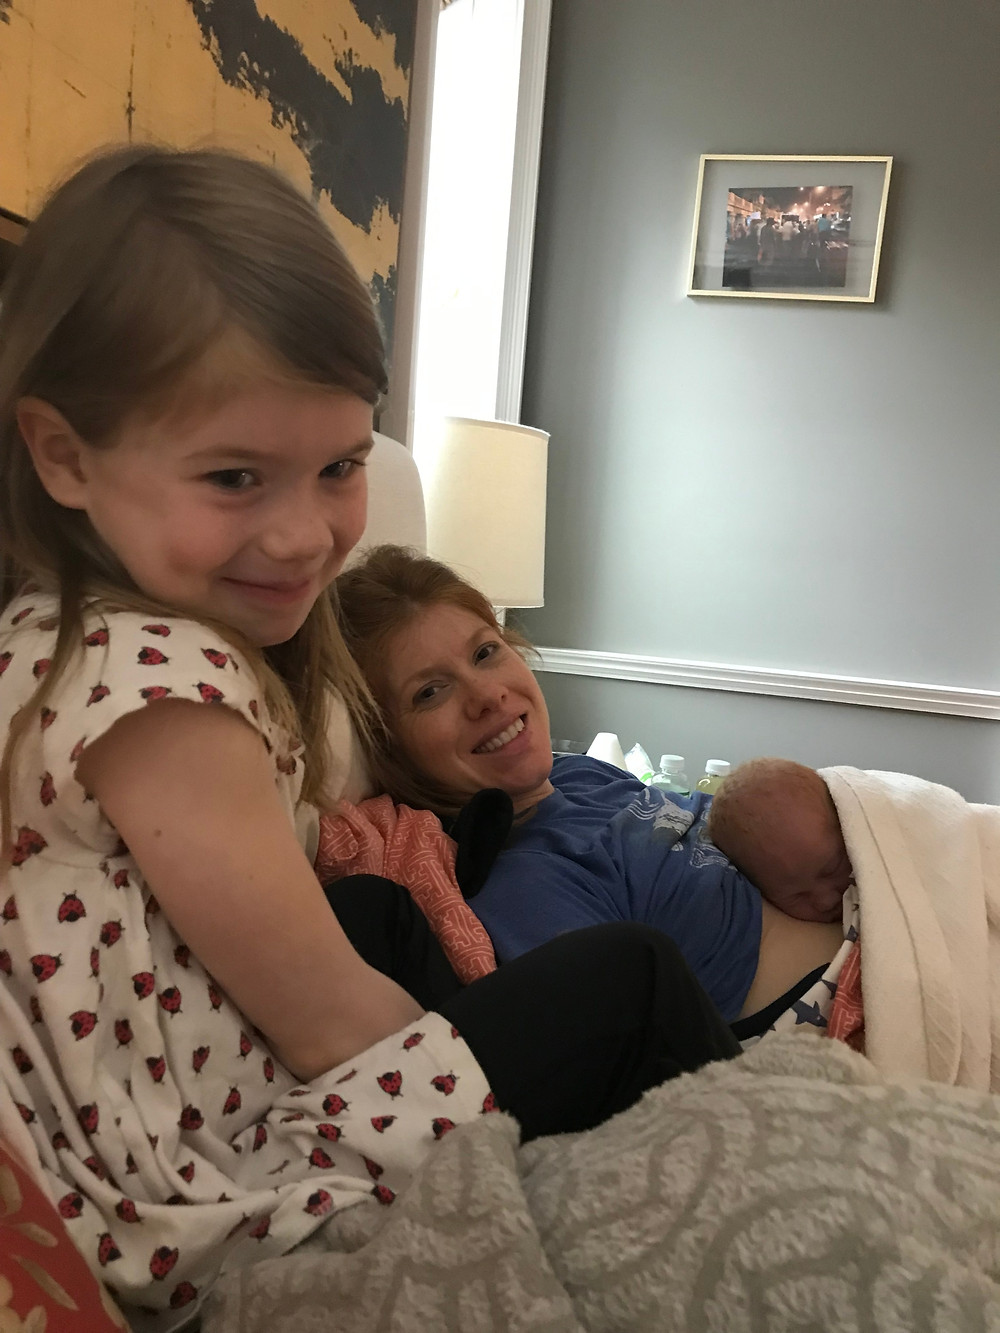 Six-year-old Julia meeting her baby brother.